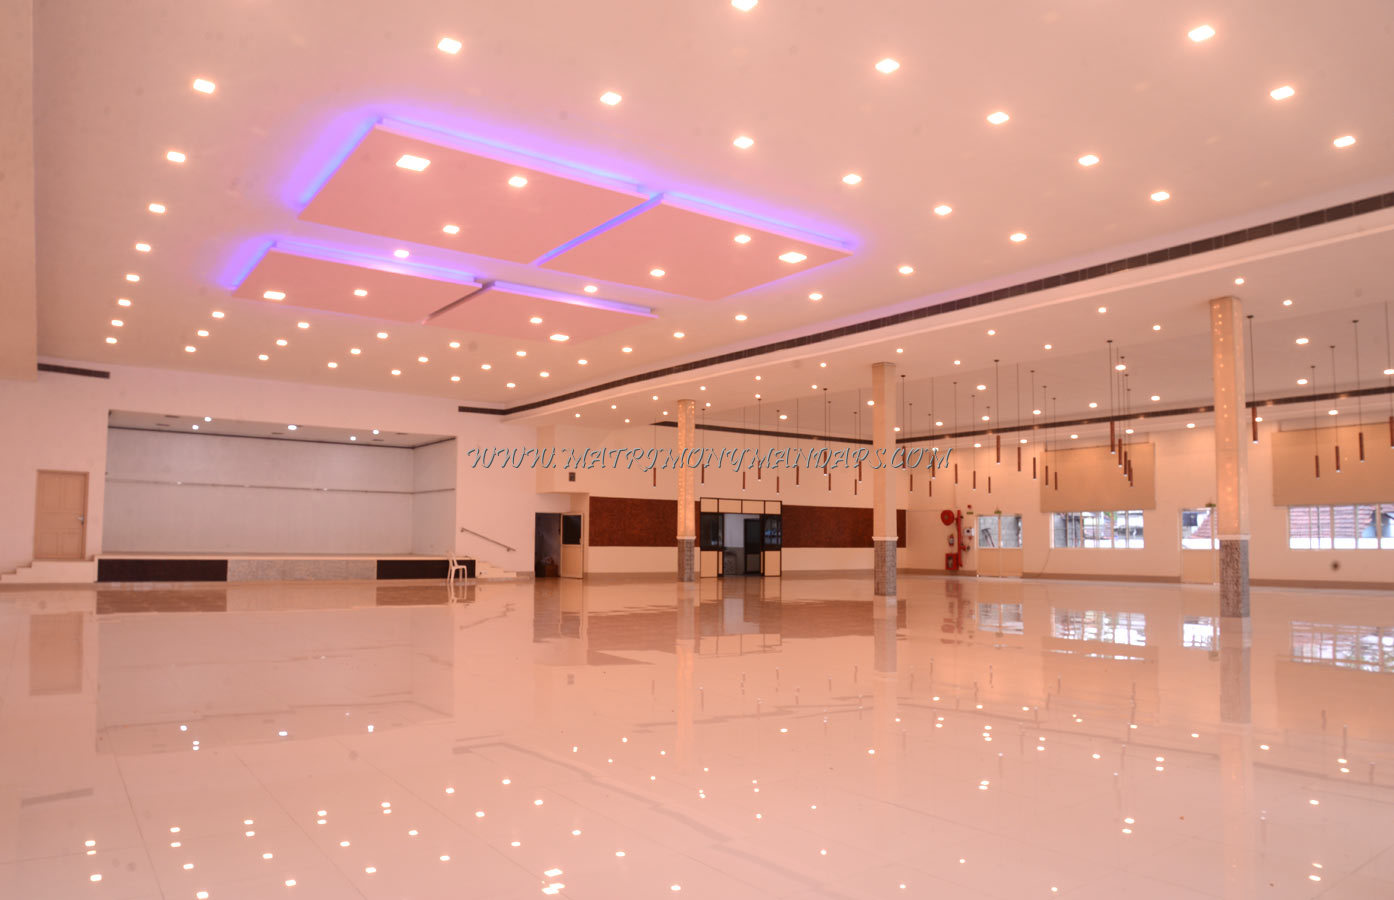 Find the availability of the Four Square Convention Centre (A/C) in Palarivattom, Kochi and avail special offers